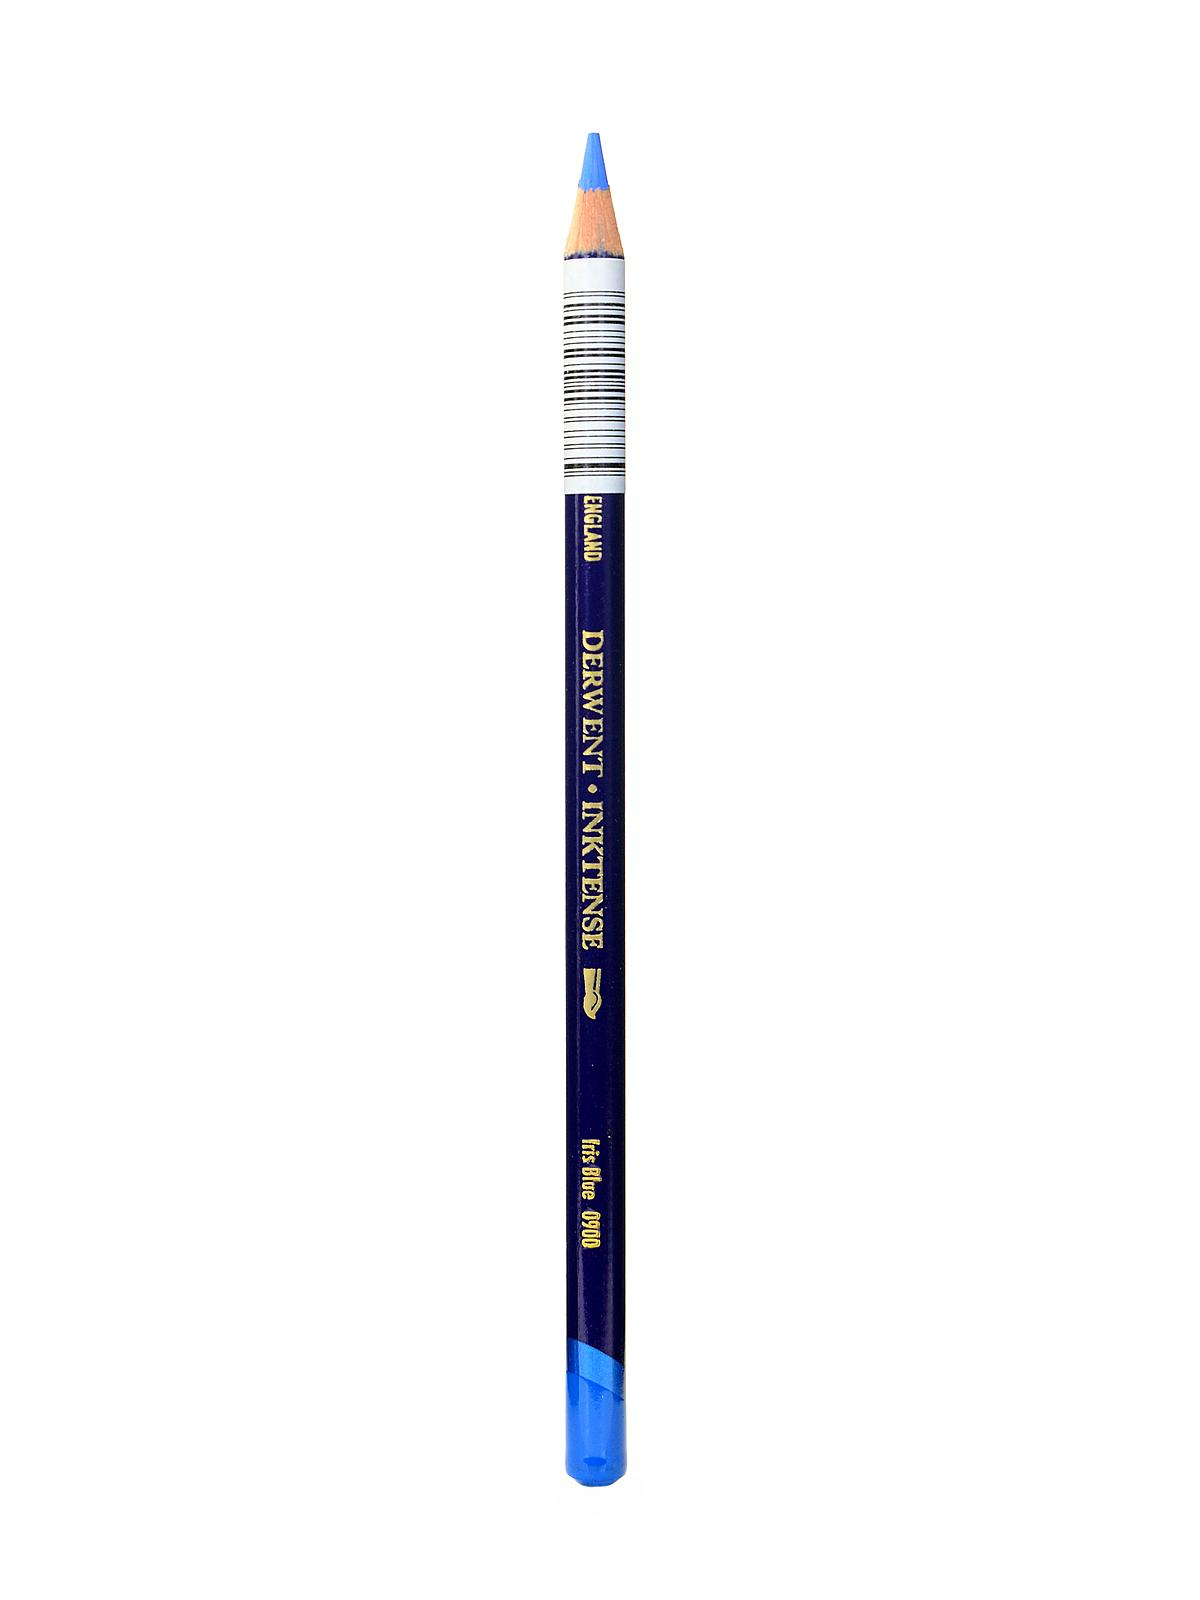 Inktense_Pencils_iris_blue_900